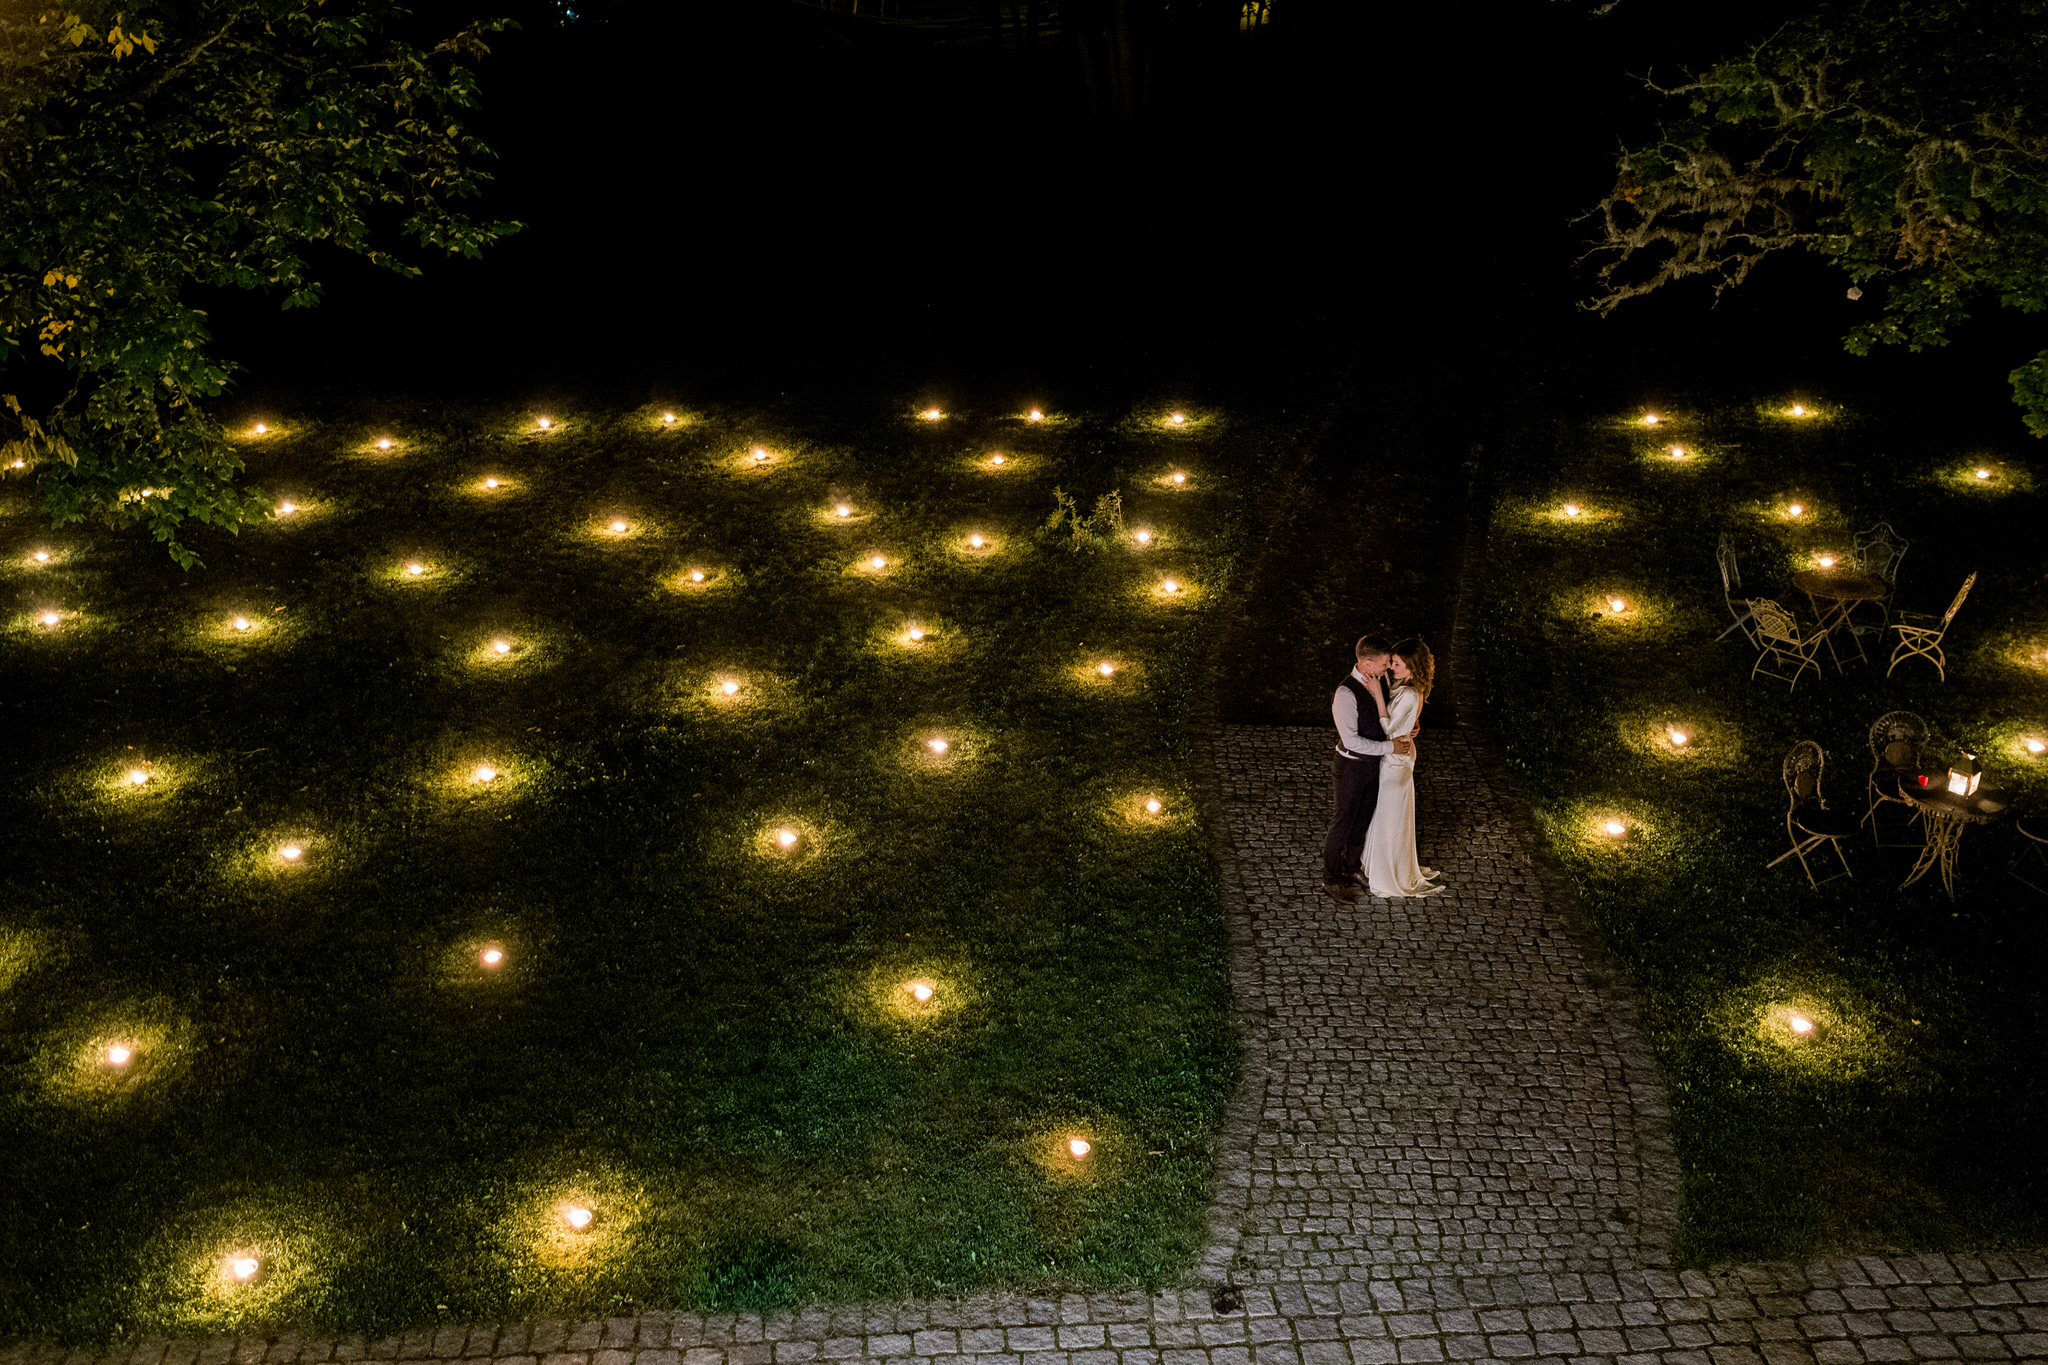 Kau_koue_manor_mois_pulm_wedding_mait_juriado_mj_studios_105